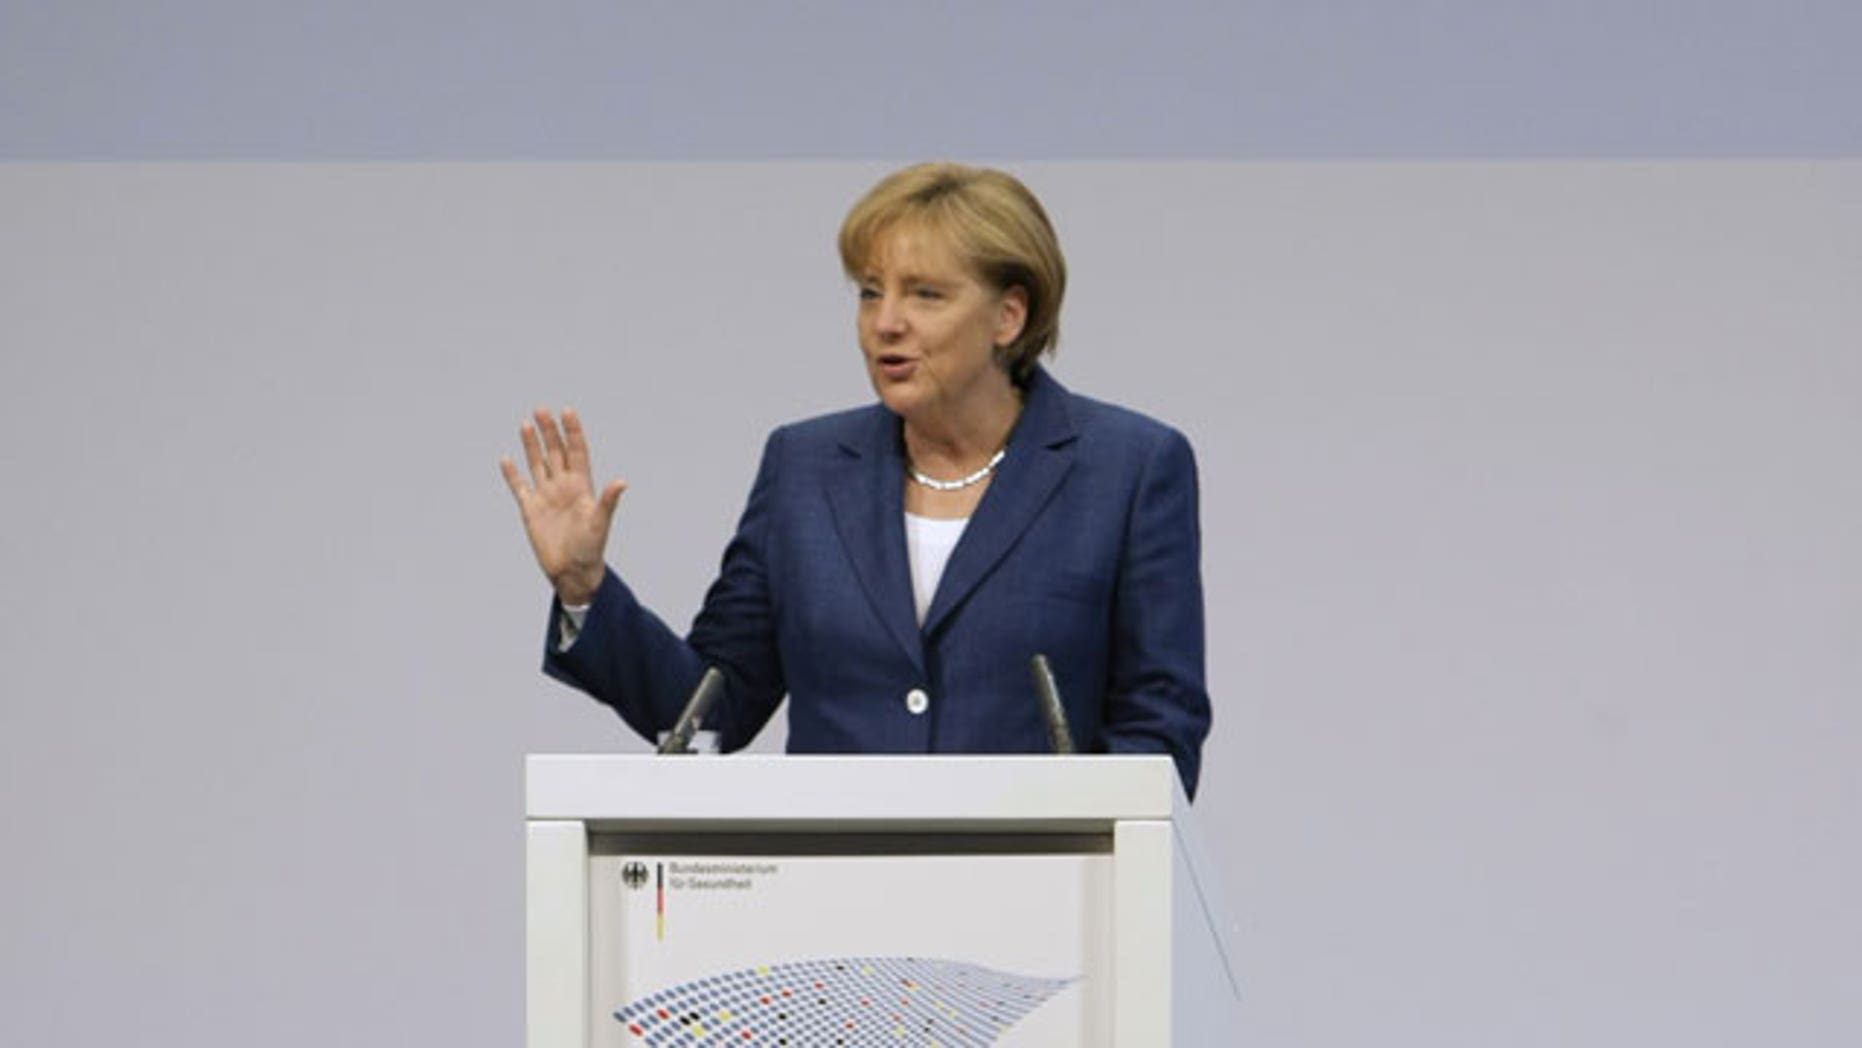 german chancellor angela merkel - photo #30